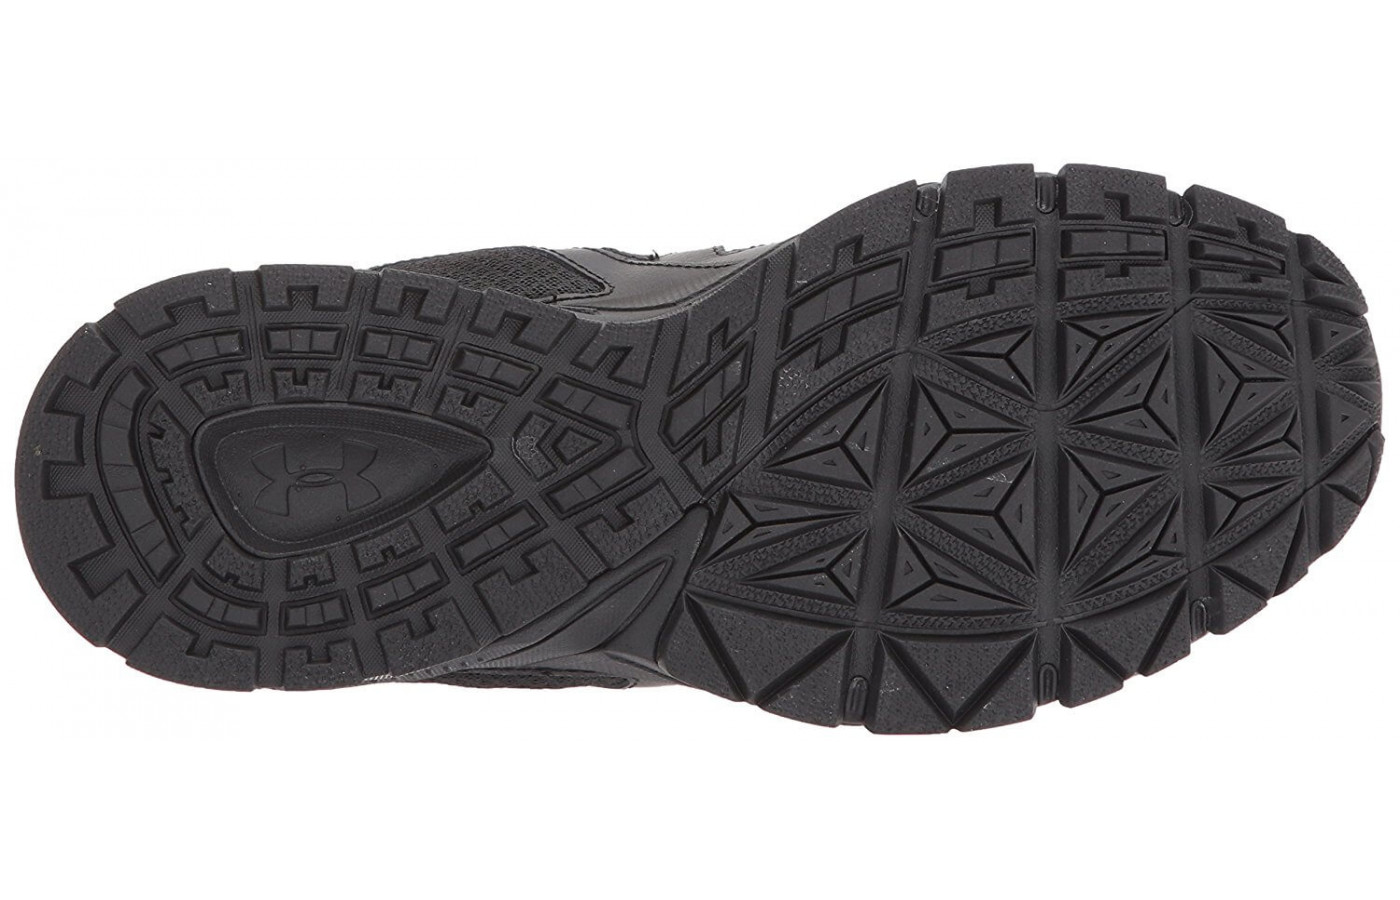 A bottom view of the Under Armour Mirage 3.0.